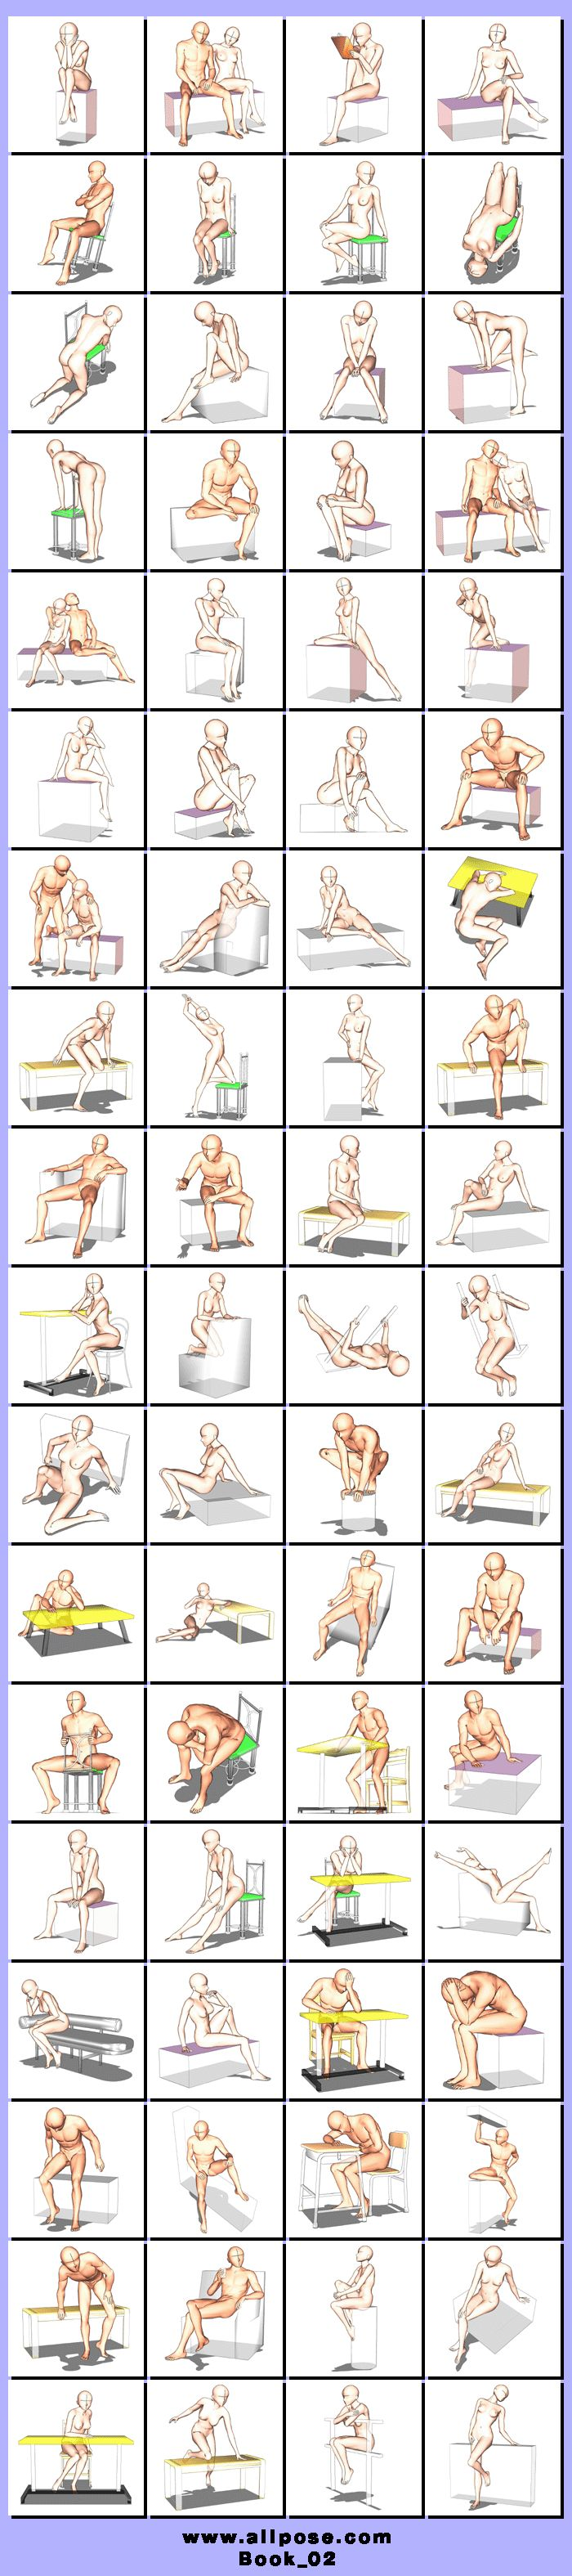 Some of these poses aren't my style but there are some good references for leaning on objects.